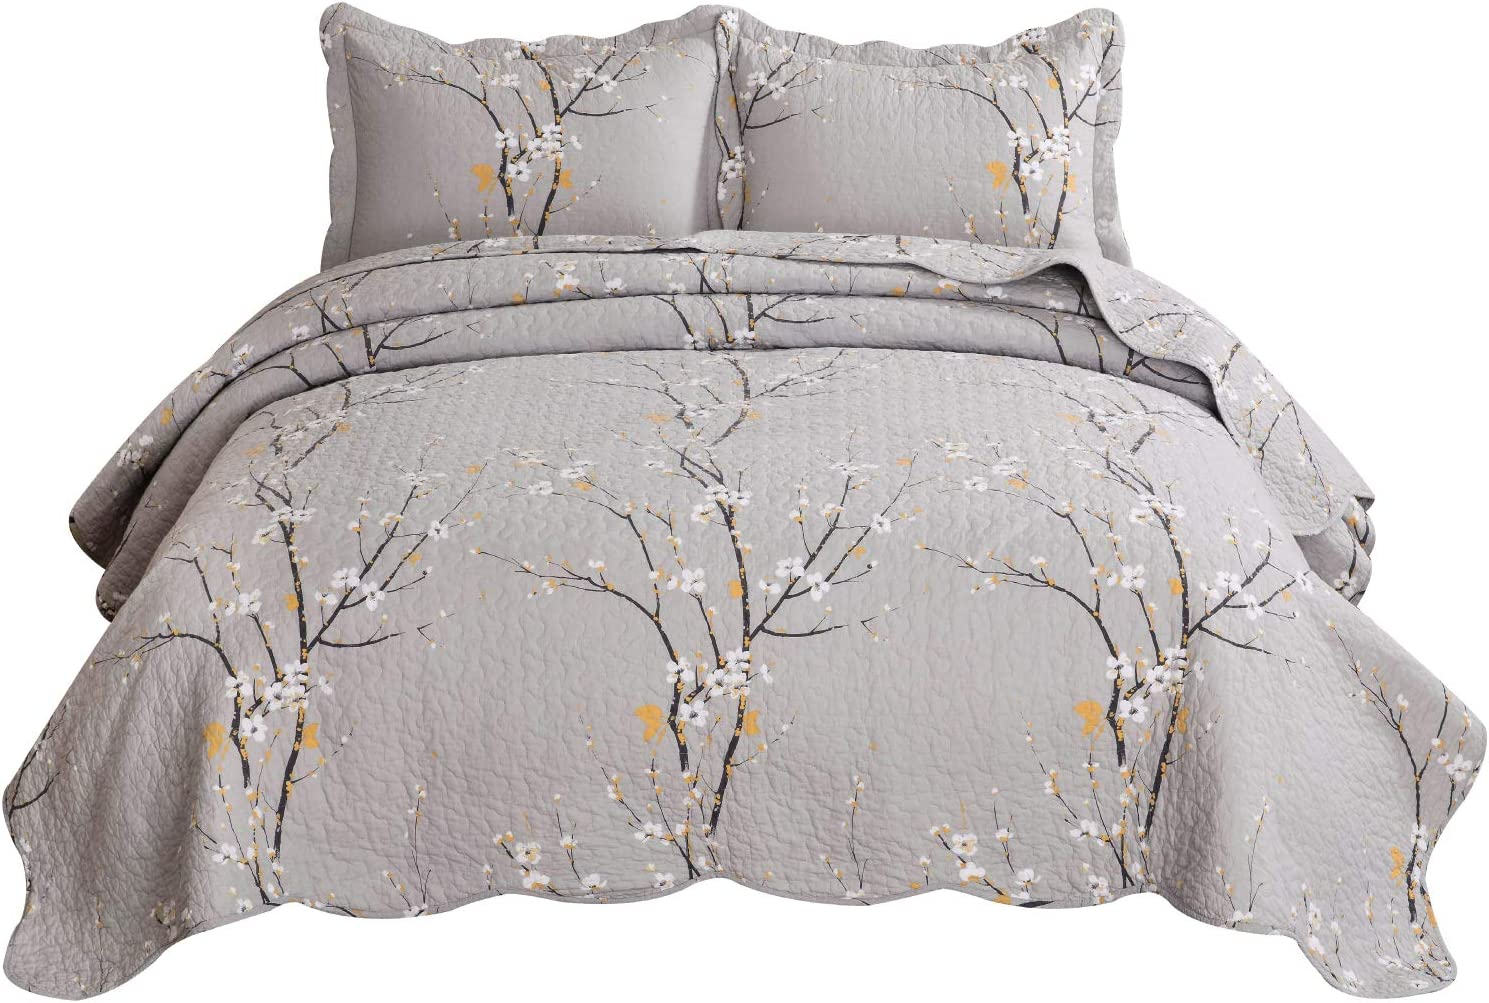 Bedsure 100% Cotton Printed Twin Quilt Set - Spring Blossom Floral Pattern, Pre-Washed, 2-Piece Quilt with 1 Sham - All-Season Bed Cover Machine Washable Bedspread Coverlet, Oyster Grey